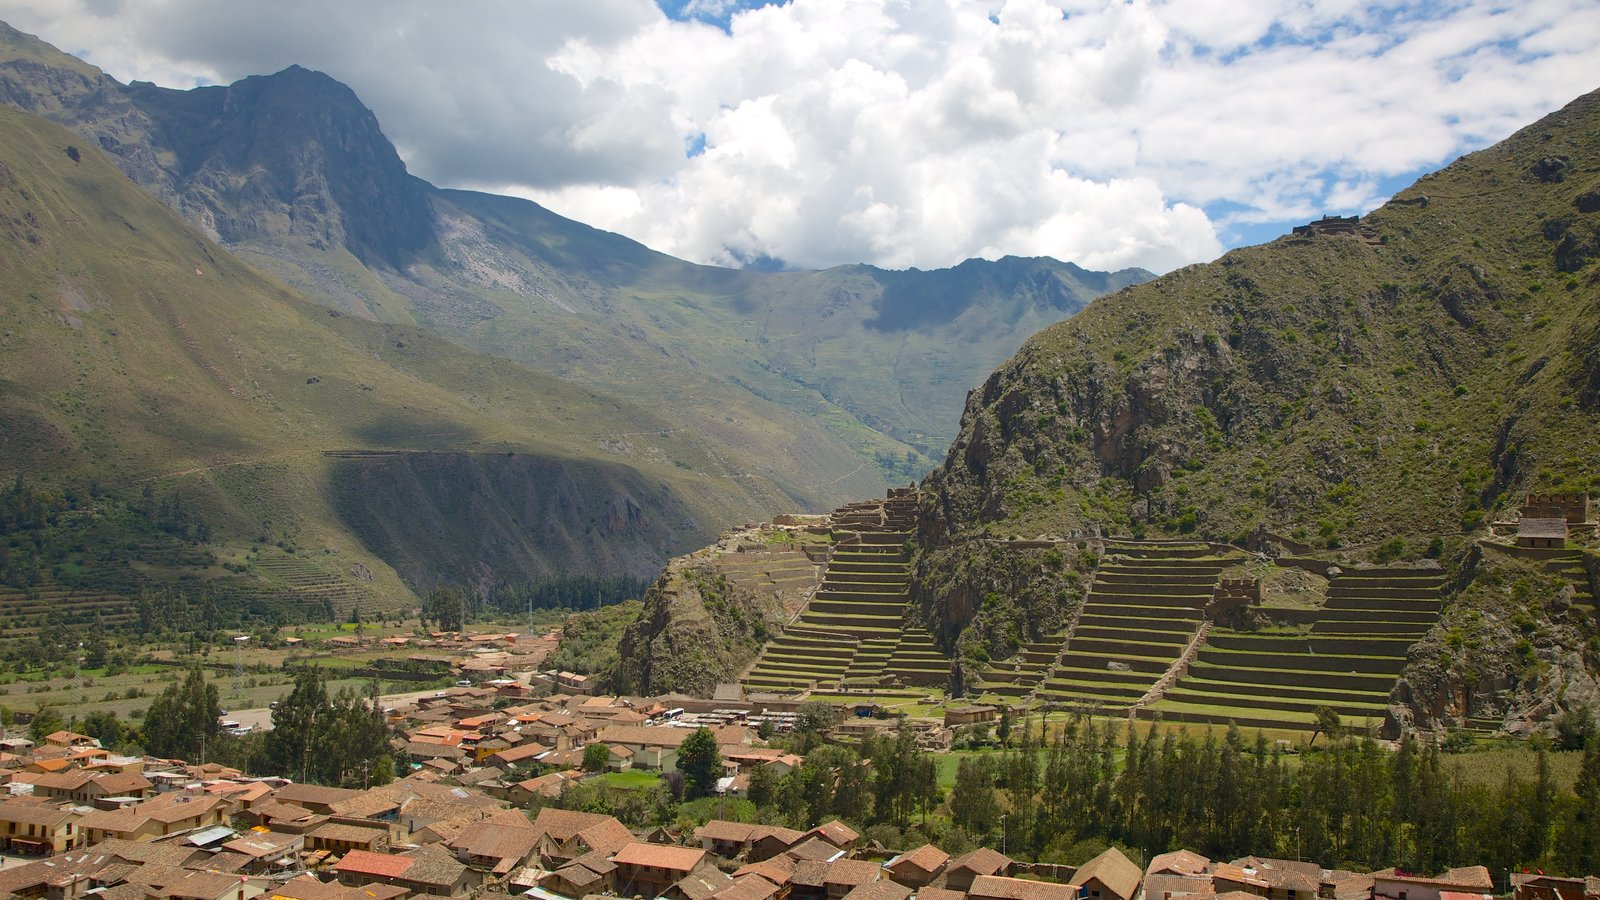 Ollantaytambo showing mountains, landscape views and a small town or village